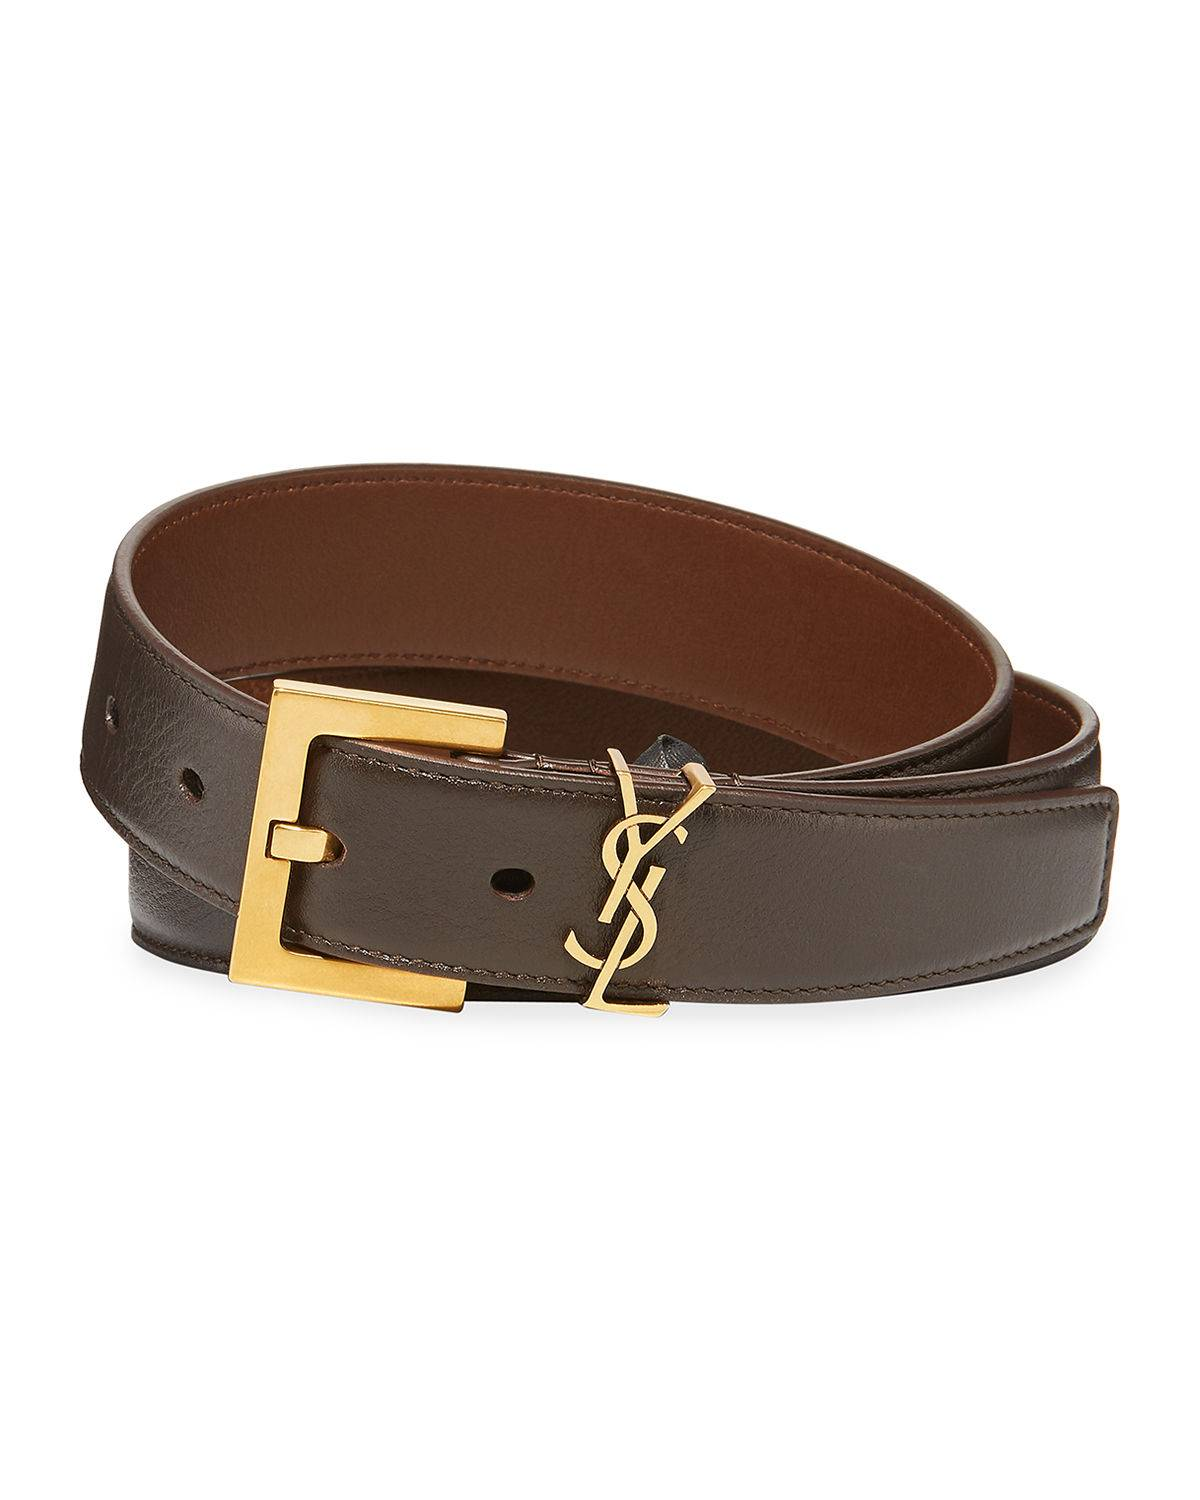 Saint Laurent YSL Monogram Leather Belt - Size: 38in / 95cm